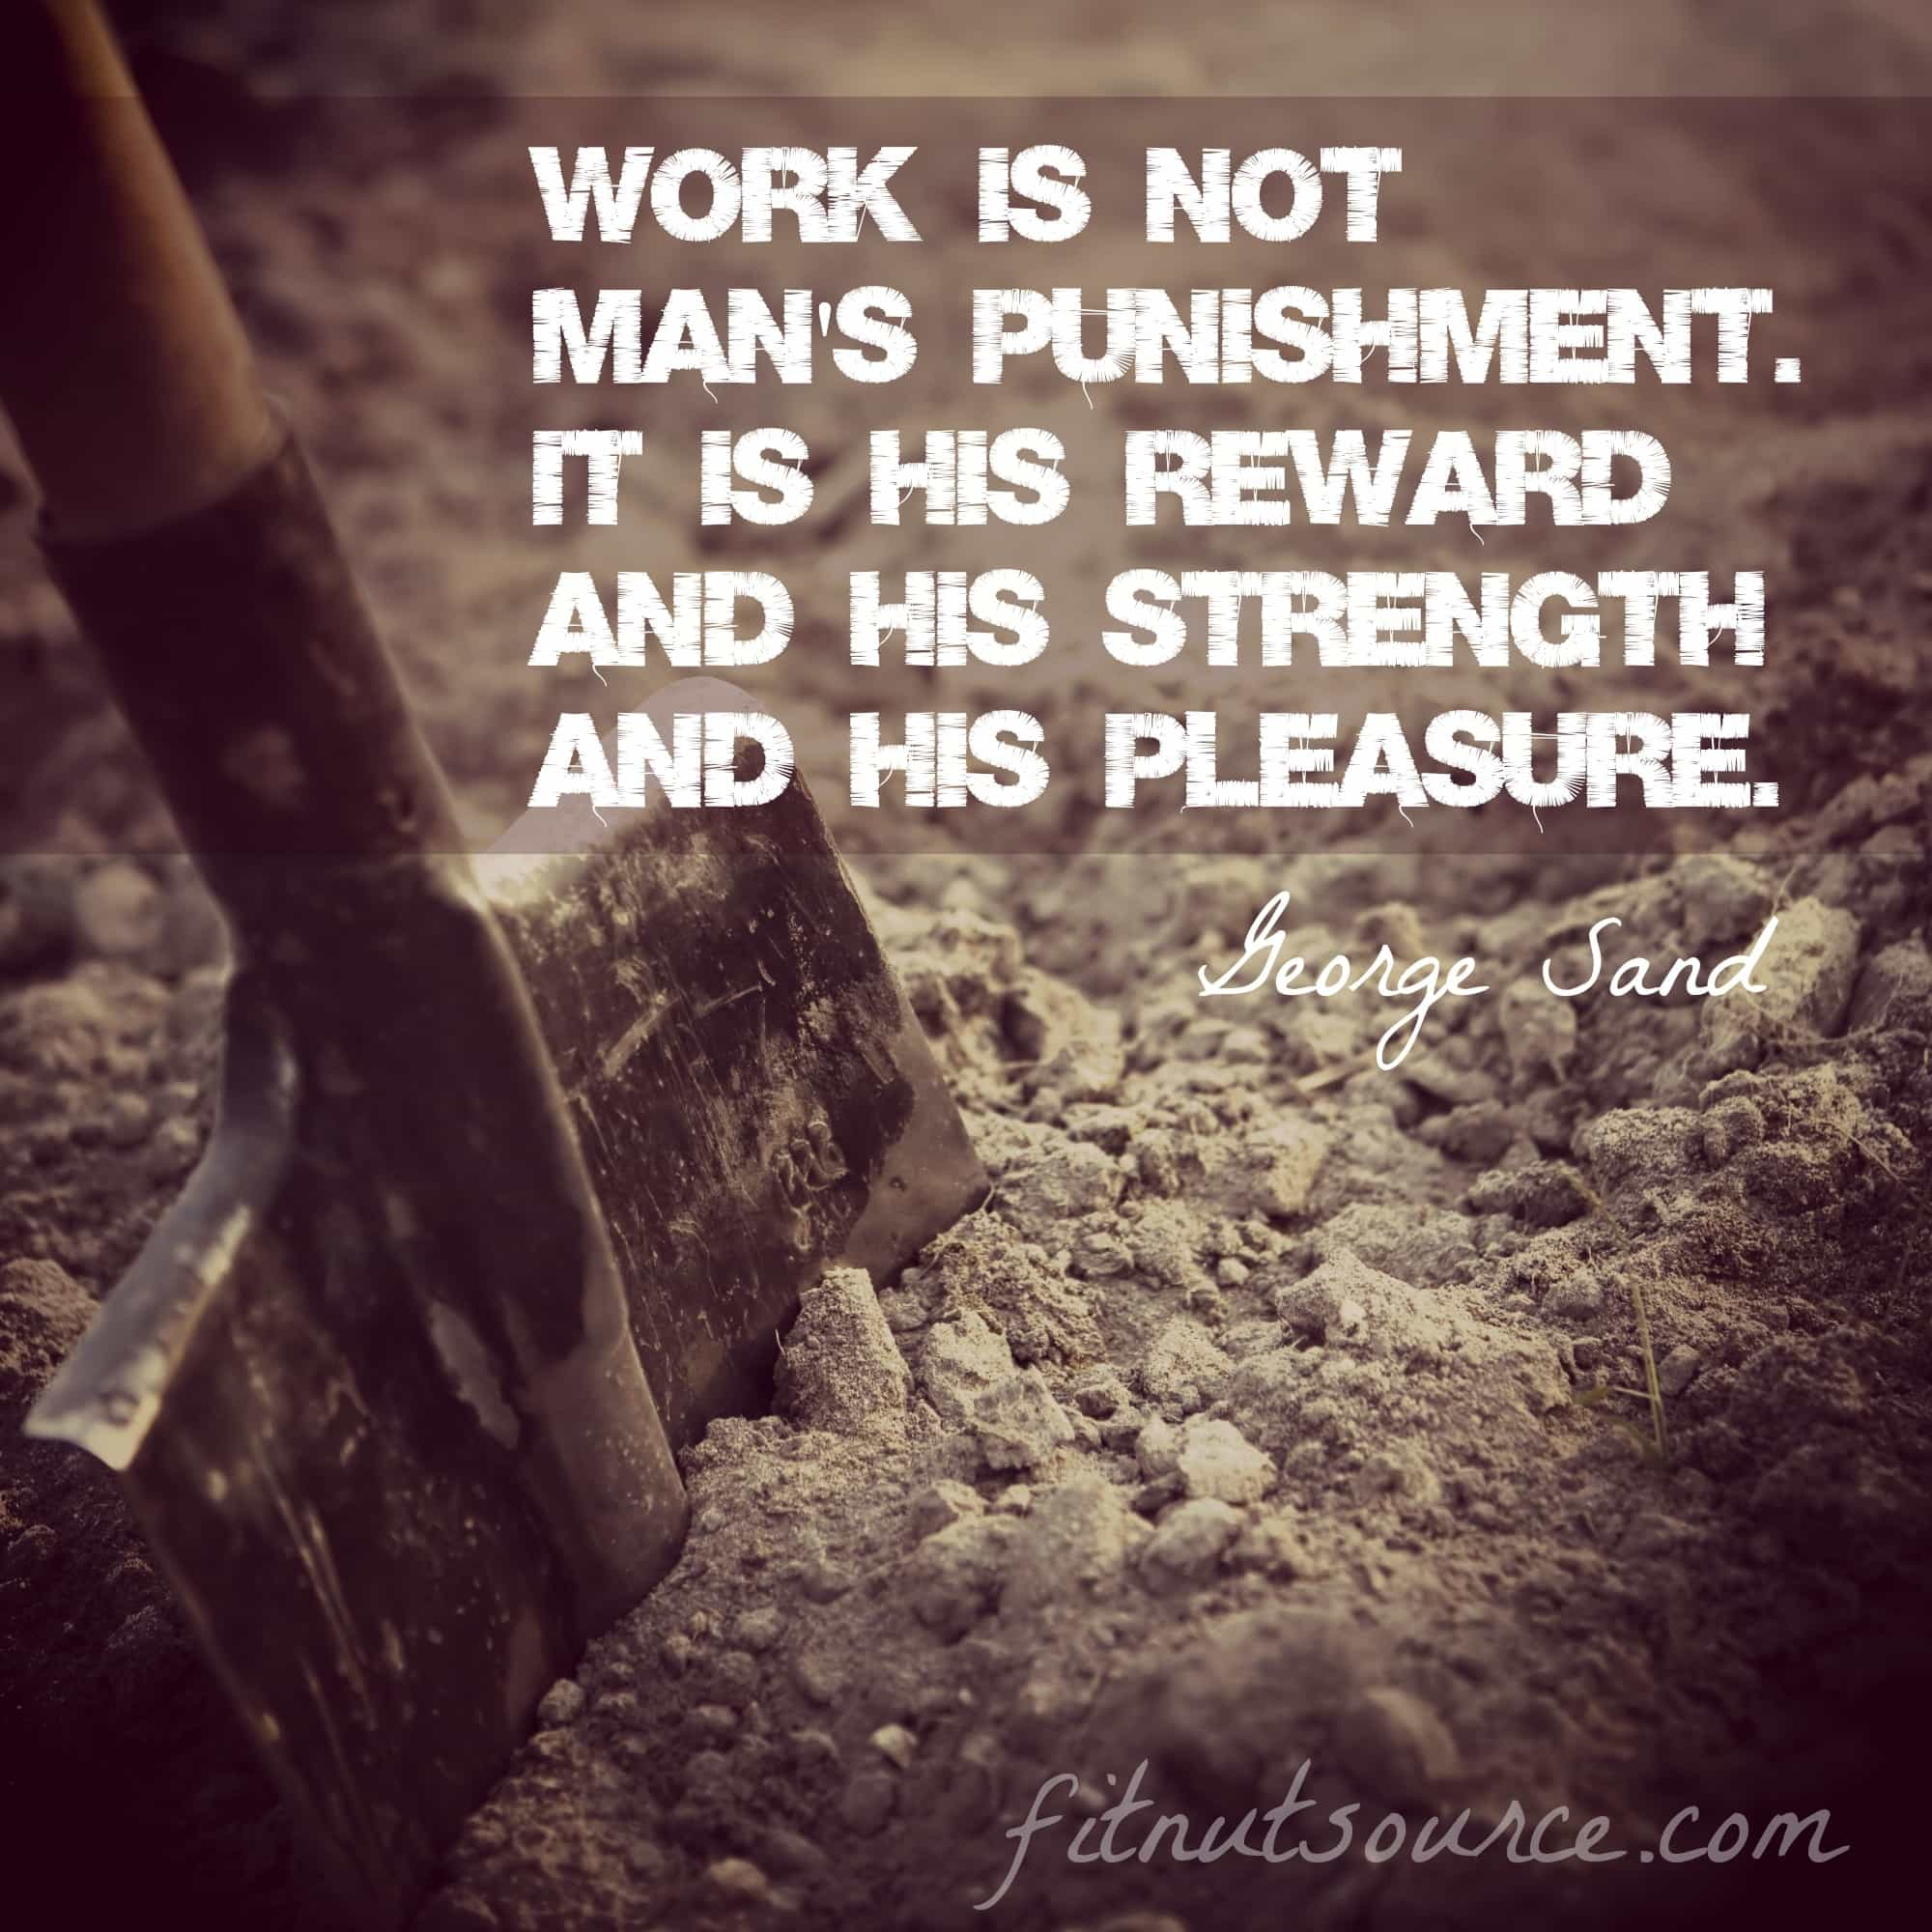 Work is not man's punishment. it is his reward and his strength and